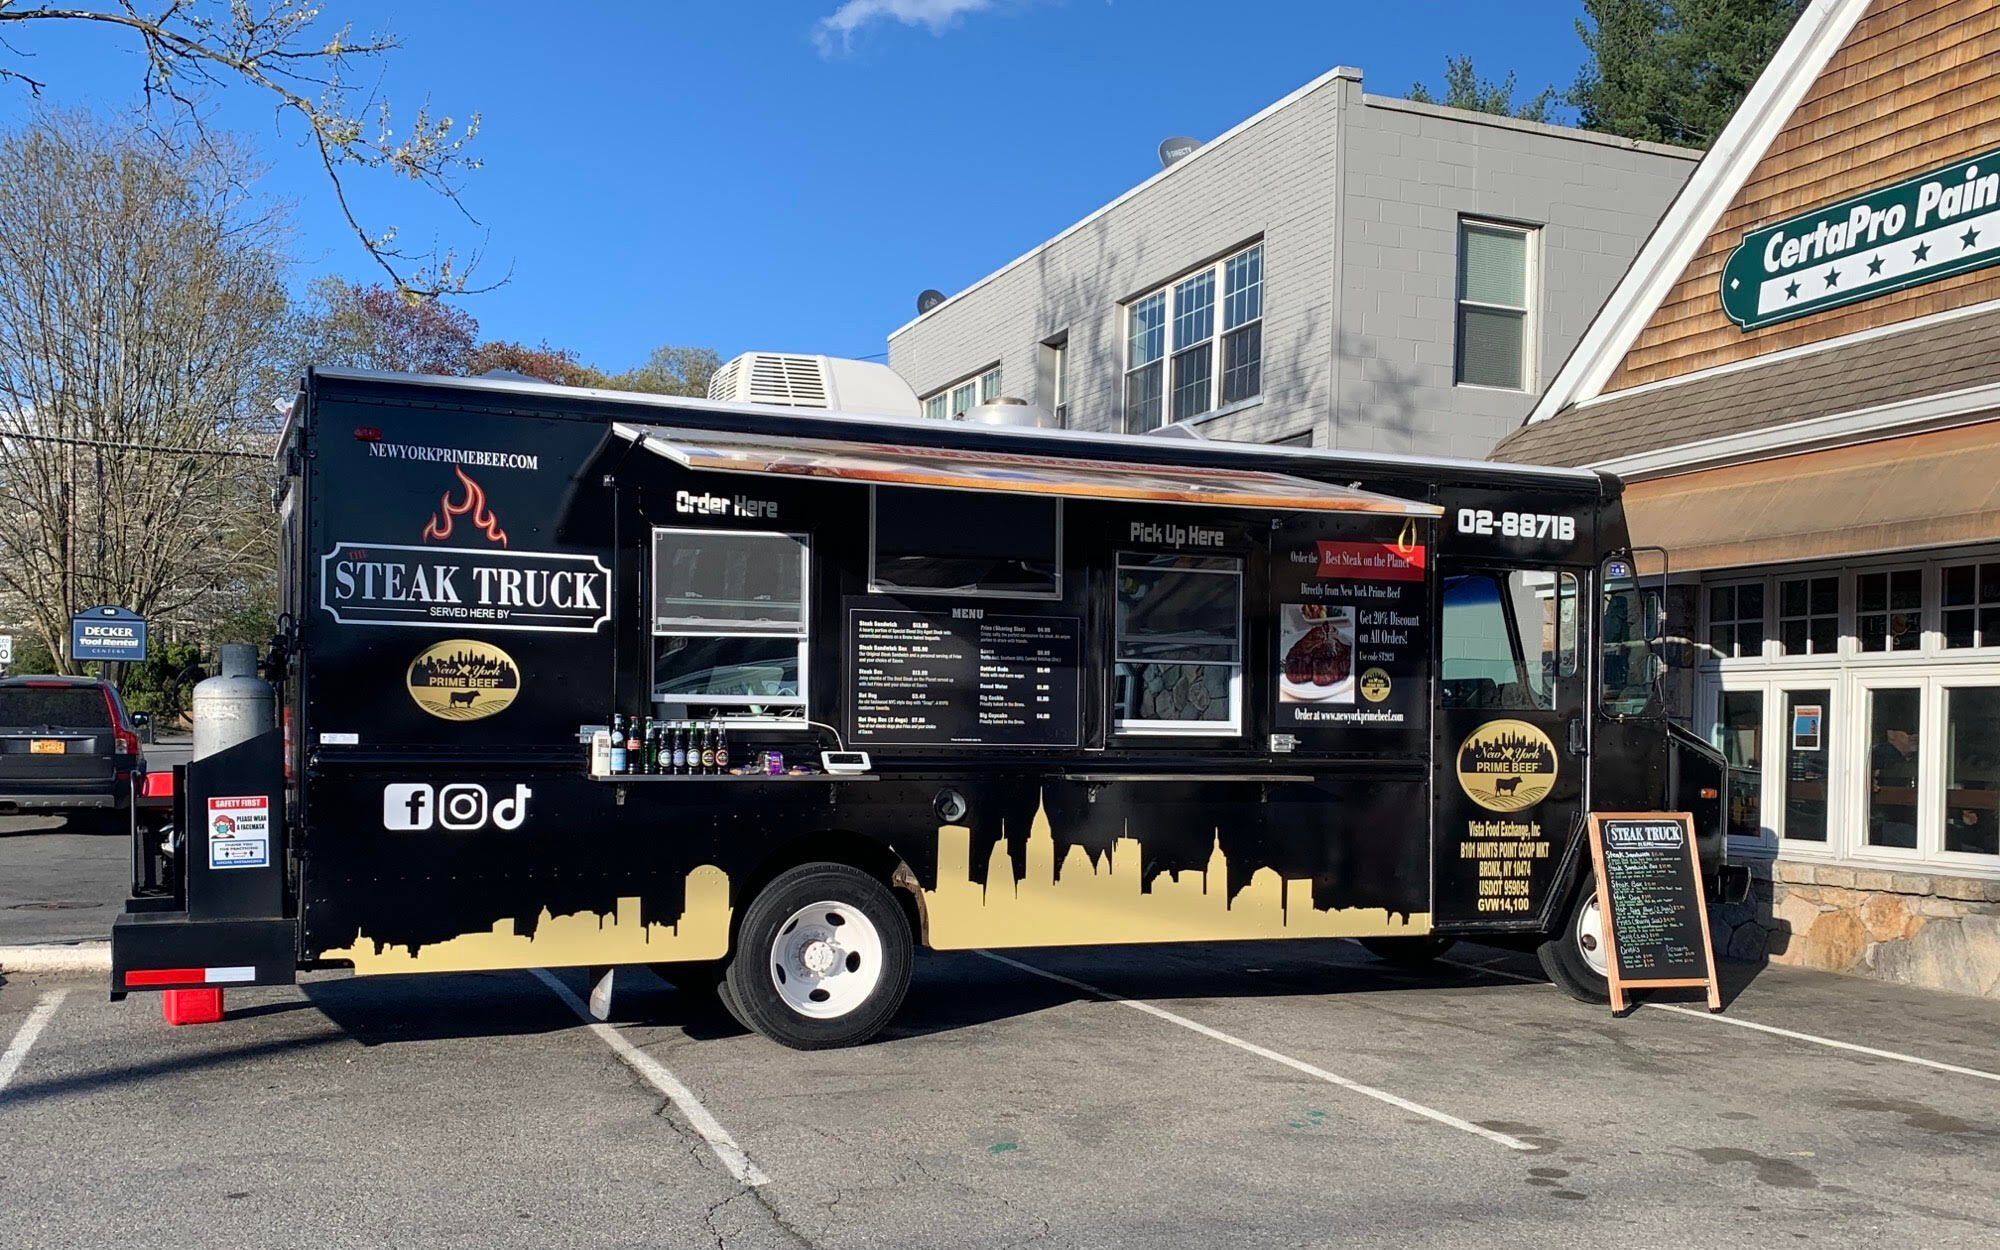 The Steak Truck Catering